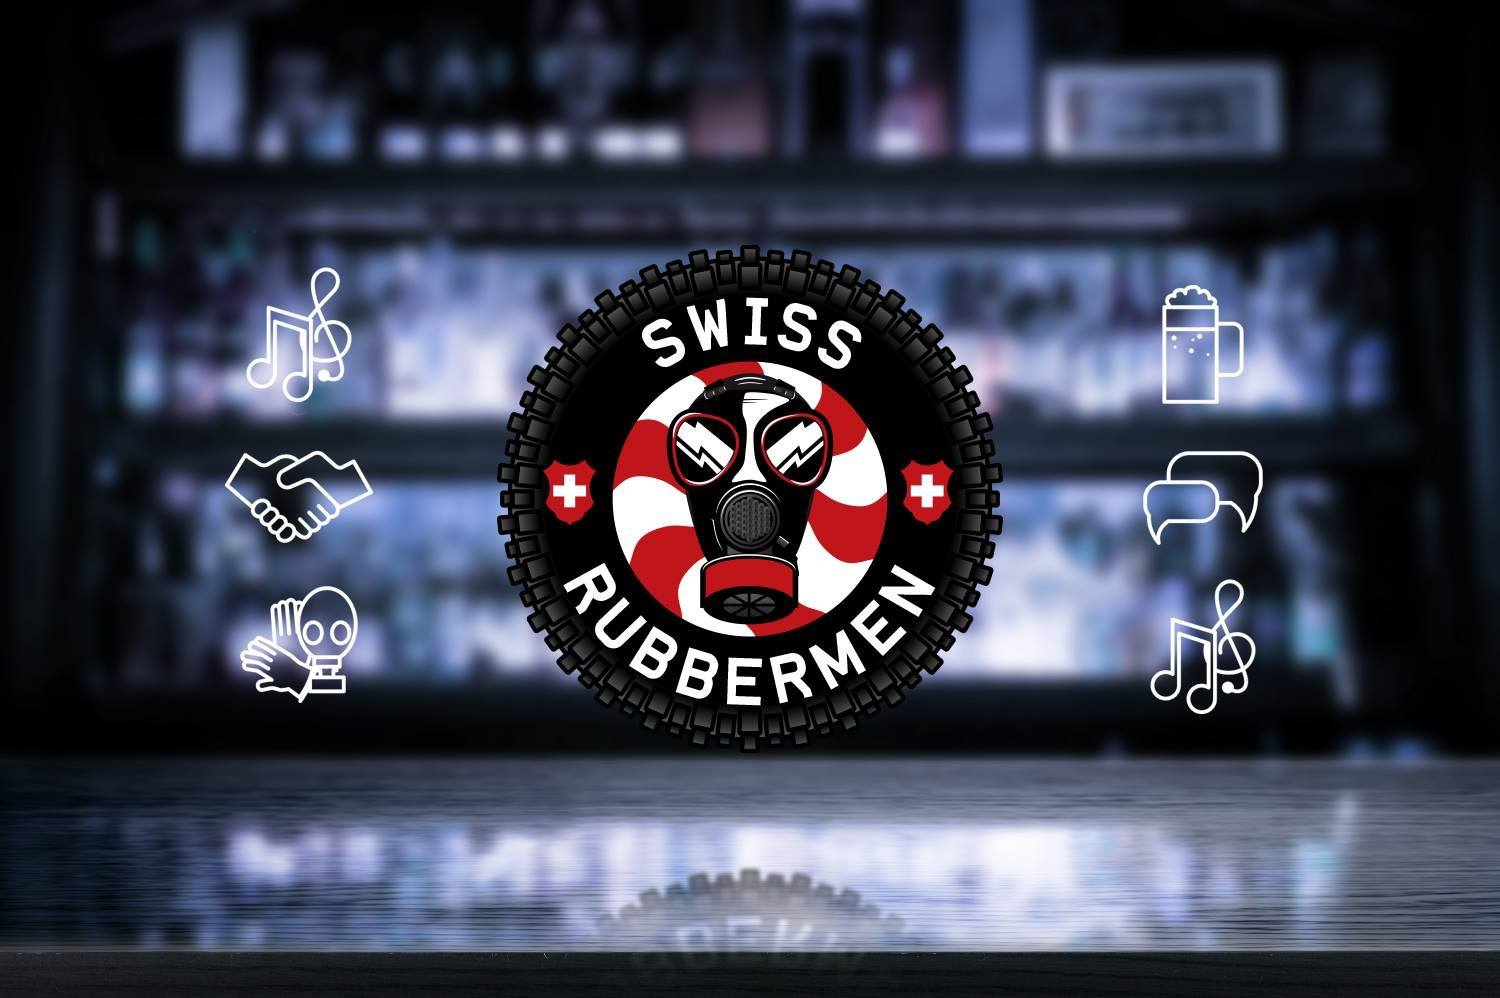 Apéro Fetish, Swiss Rubbermen